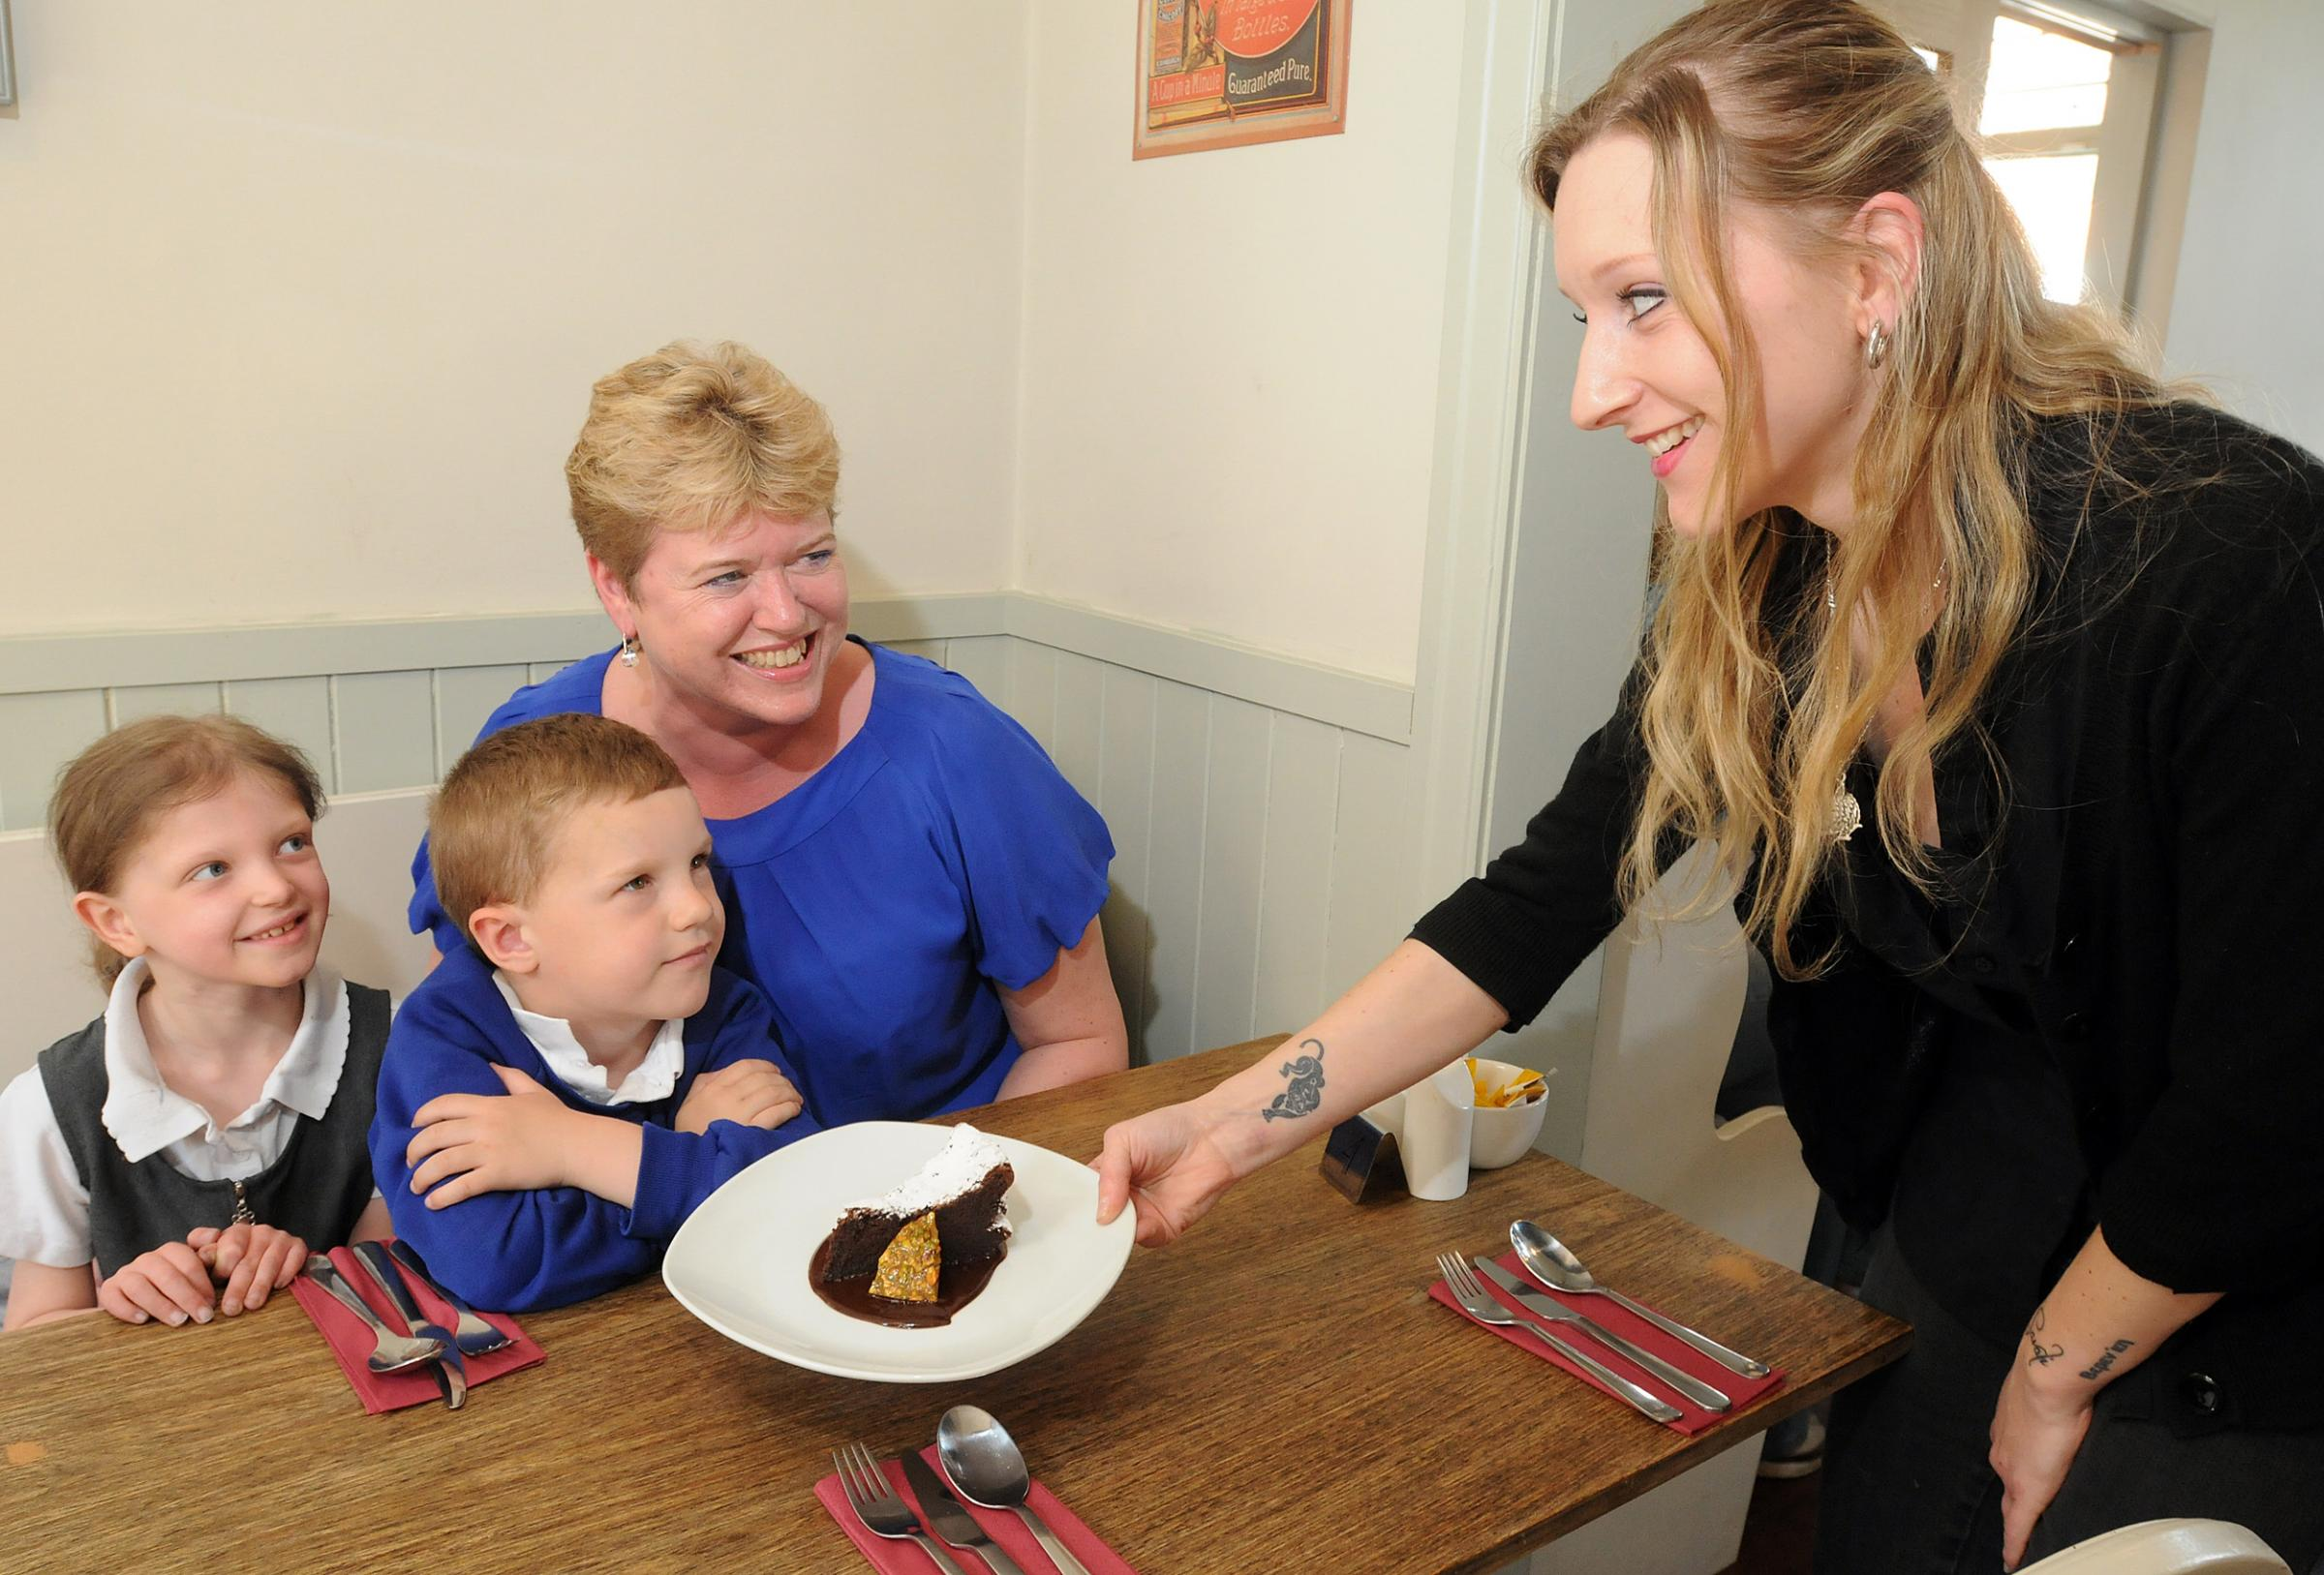 Westfield Primary Community School teacher Tracey Ralph and her pupils Jodie Foster (8)  and James Dickinson (4) visited Conlons Cafe and Bistro and were served with gluten free meals by co owner Sava Allott as part of Coeliac .